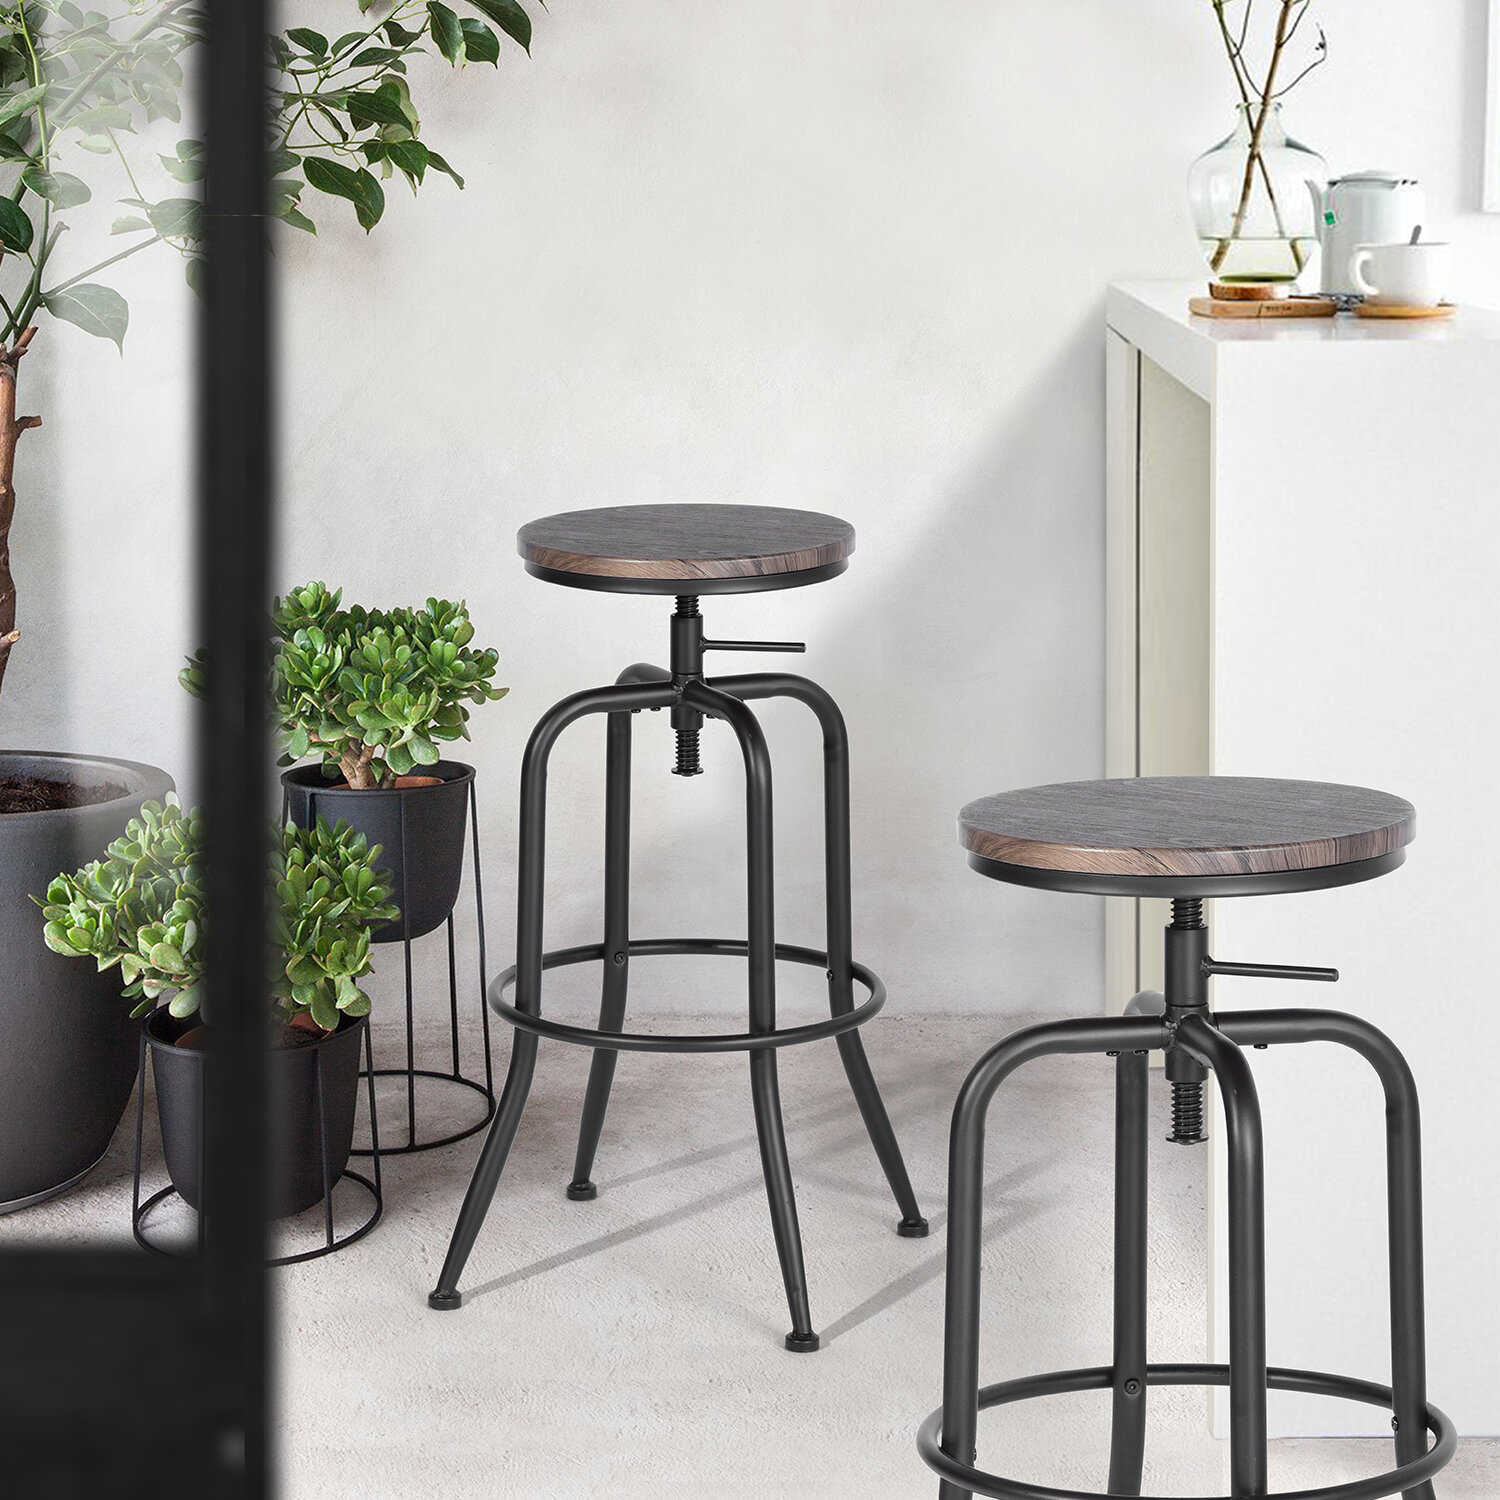 Zipcode Design Grundy Swivel Adjustable Height Bar Stools Reviews Wayfair